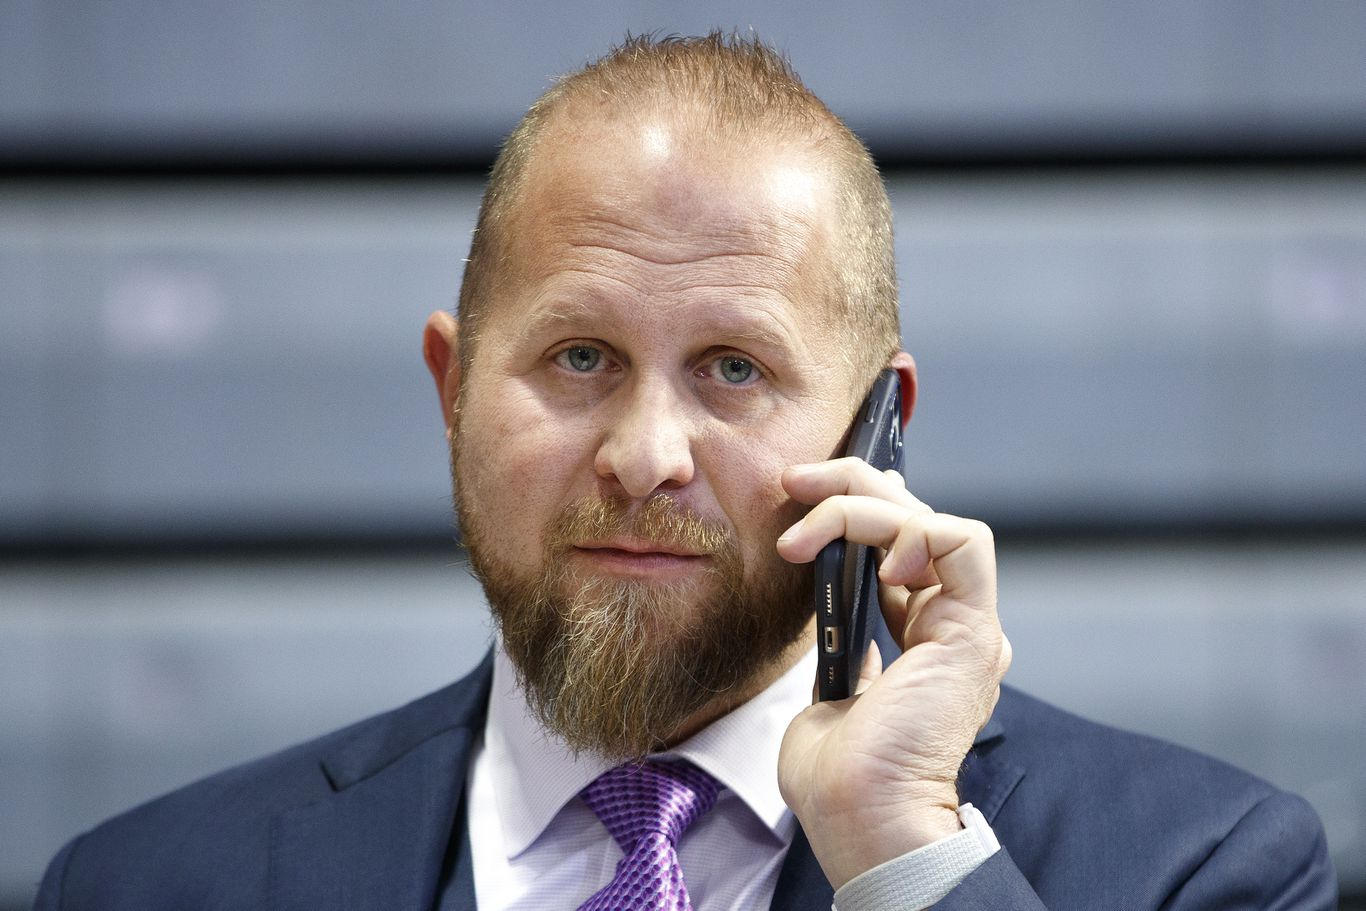 Former Trump campaign manager Brad Parscale hospitalized thumbnail